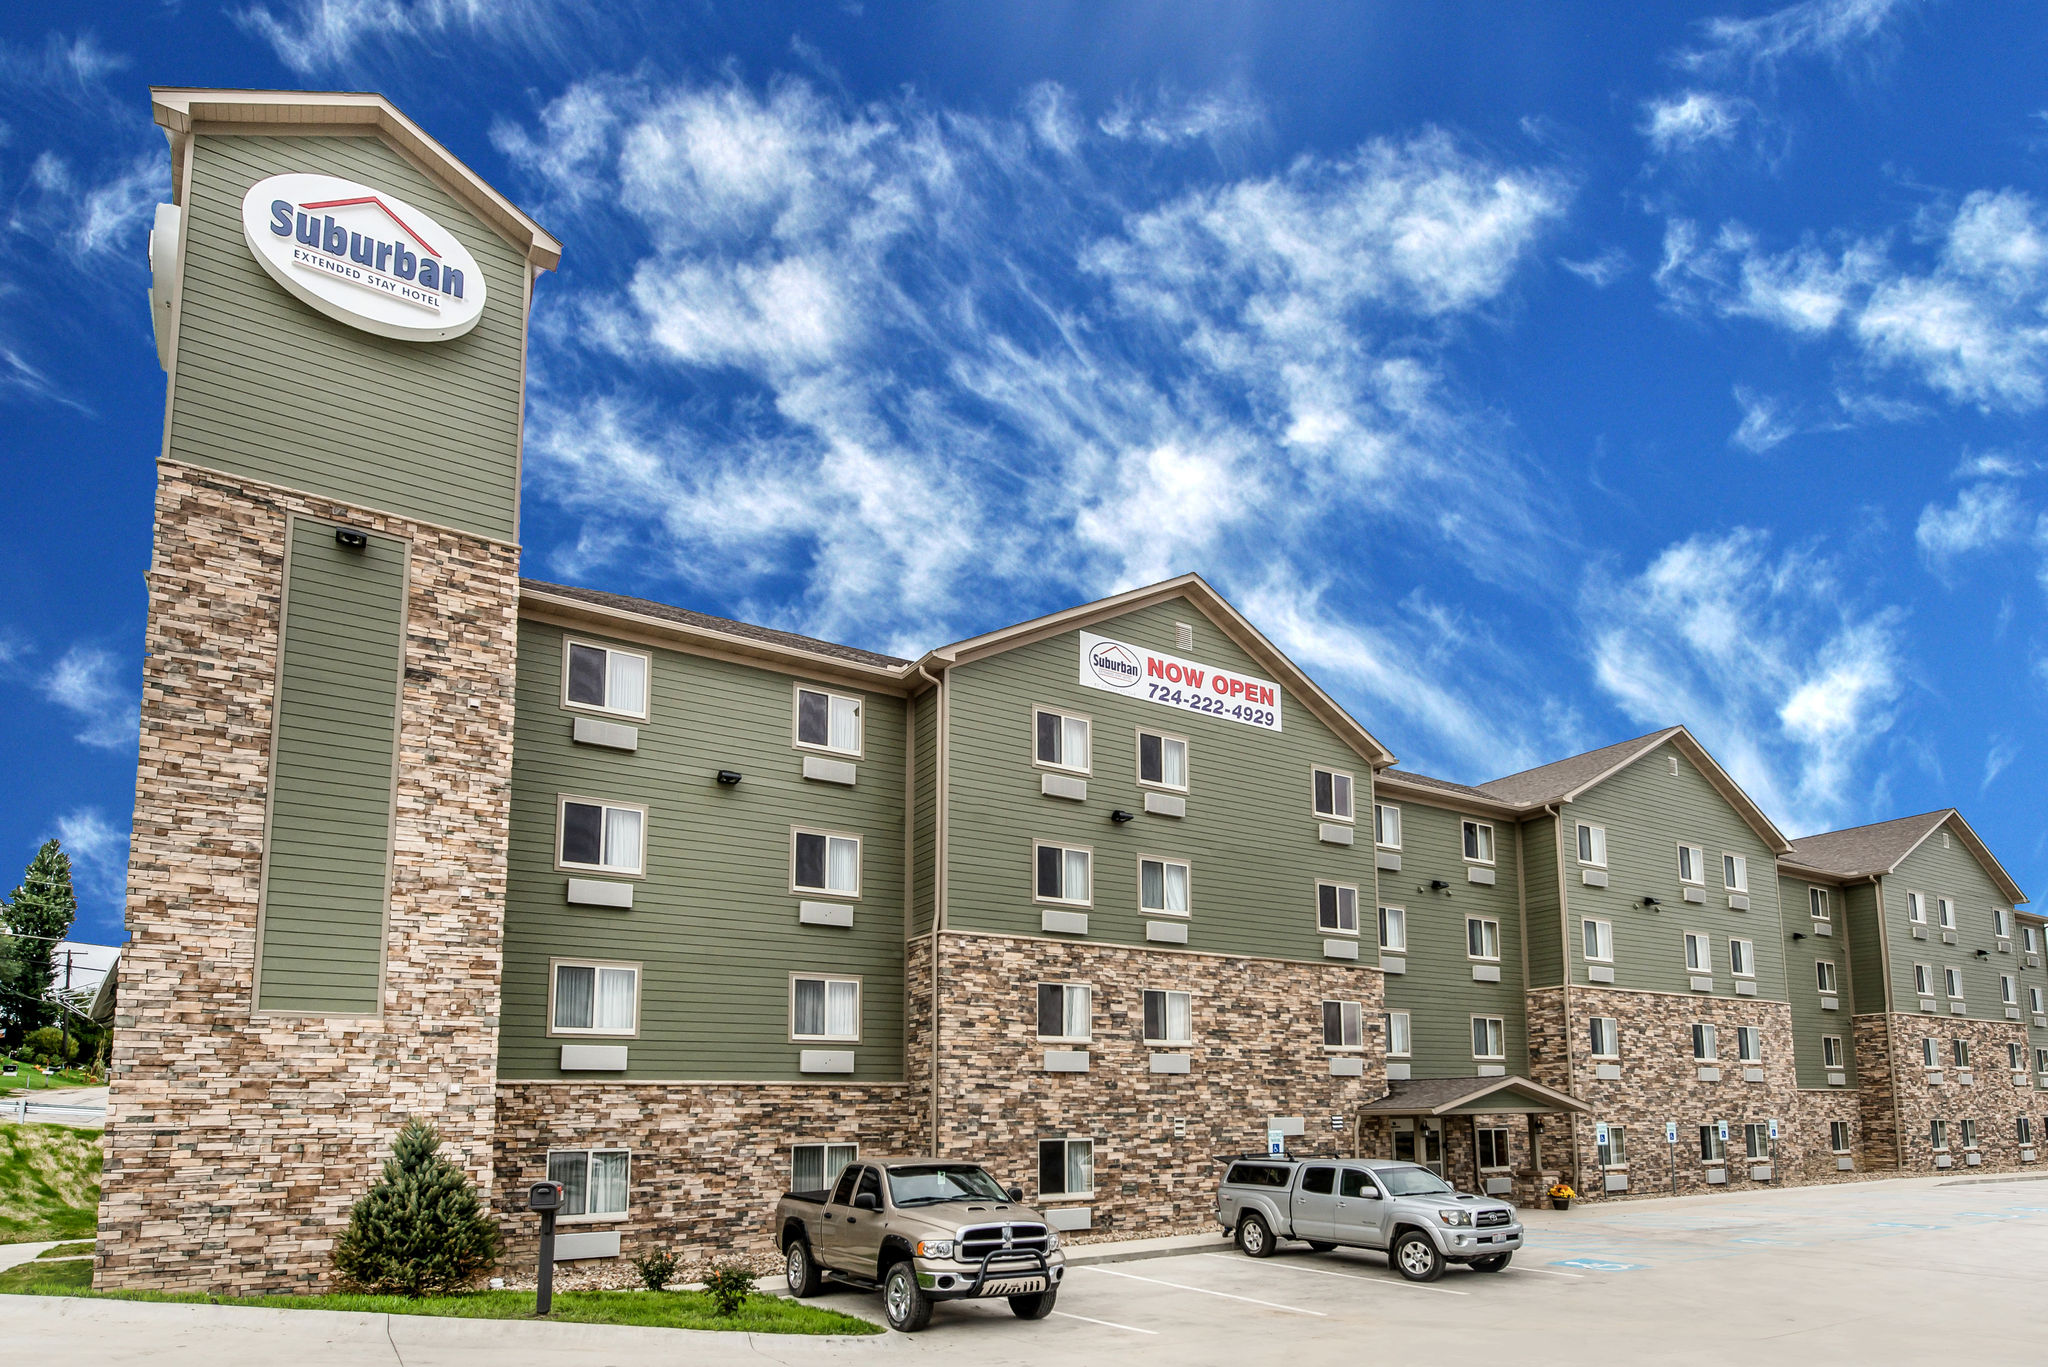 Suburban Extended Stay Washington PA